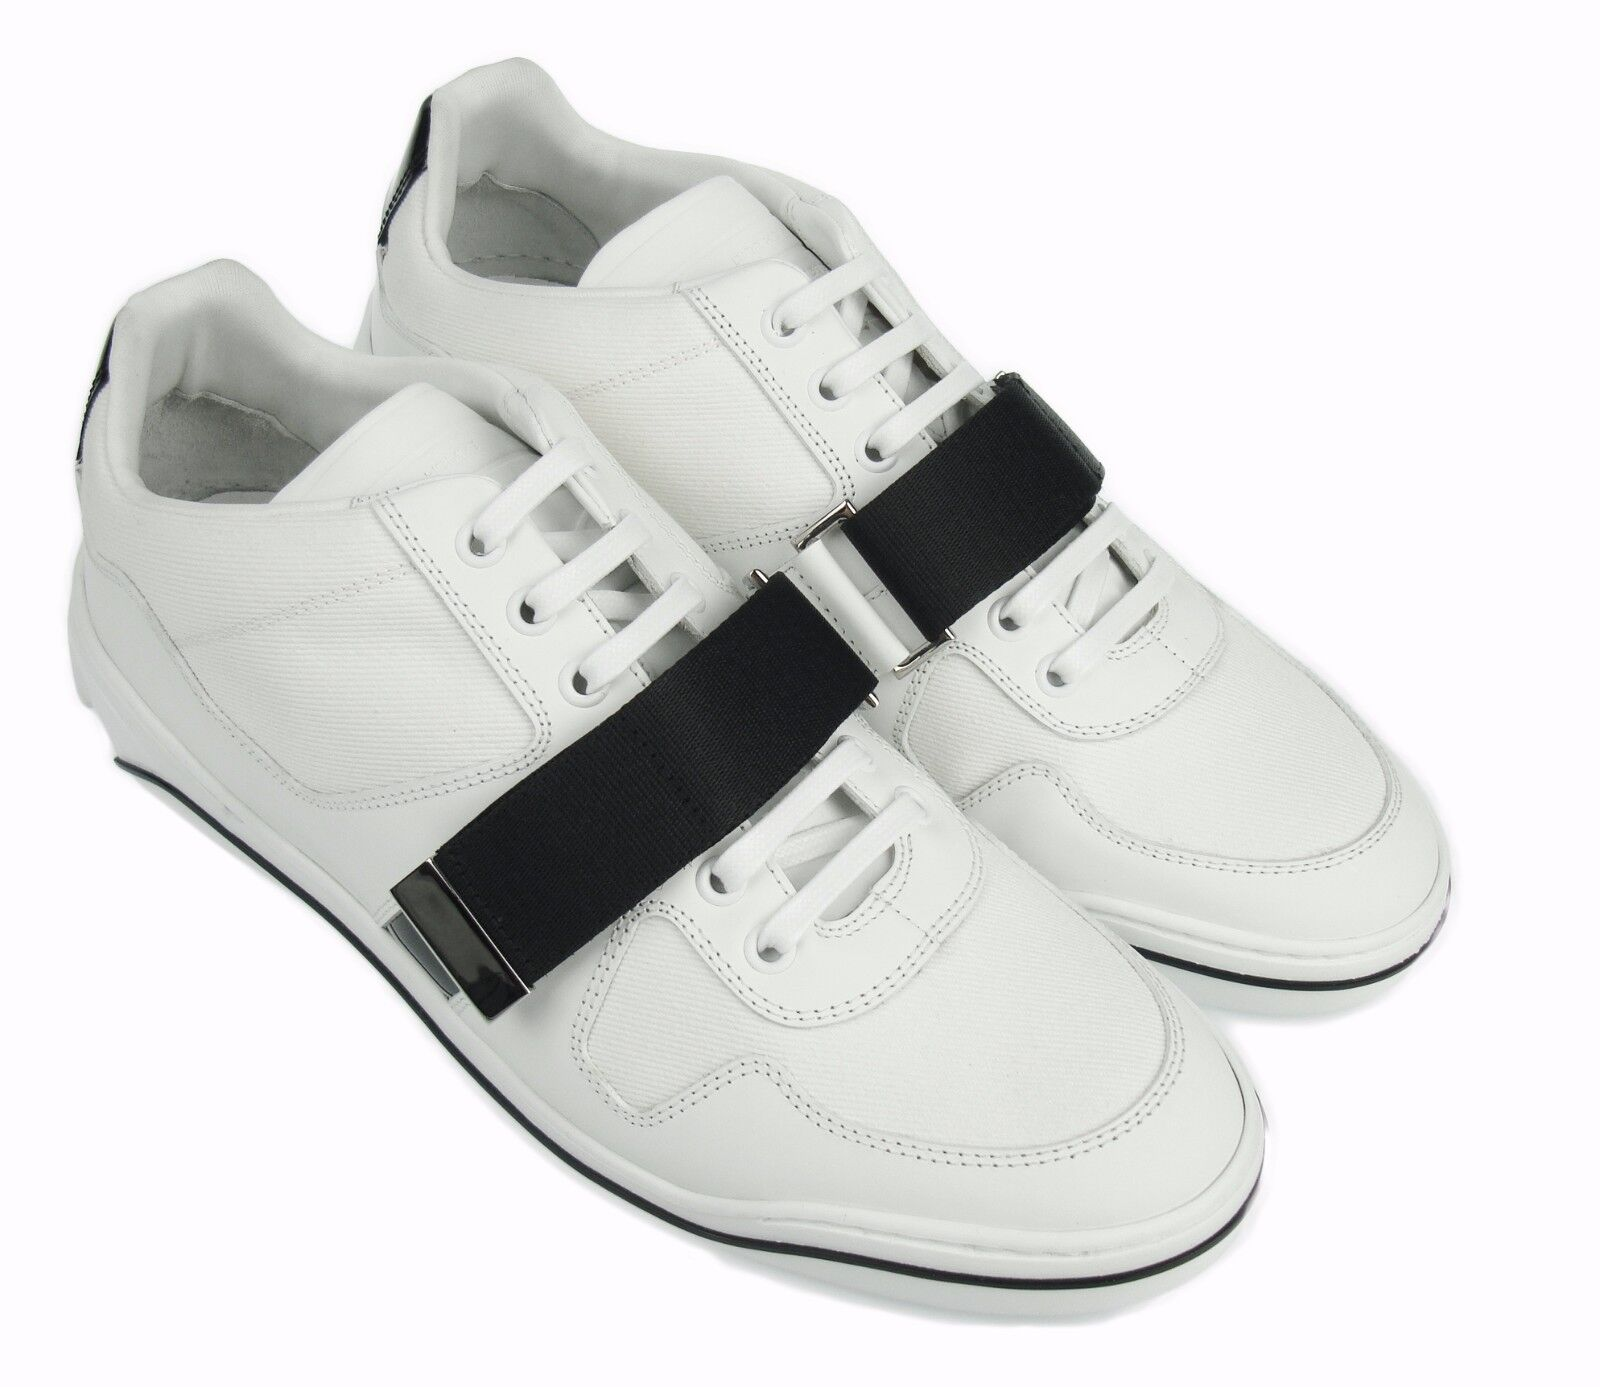 DIOR 1200 men's shoes sneakers 男鞋 NEW 100%AUTENTICH MADE IN ITALY ps16us